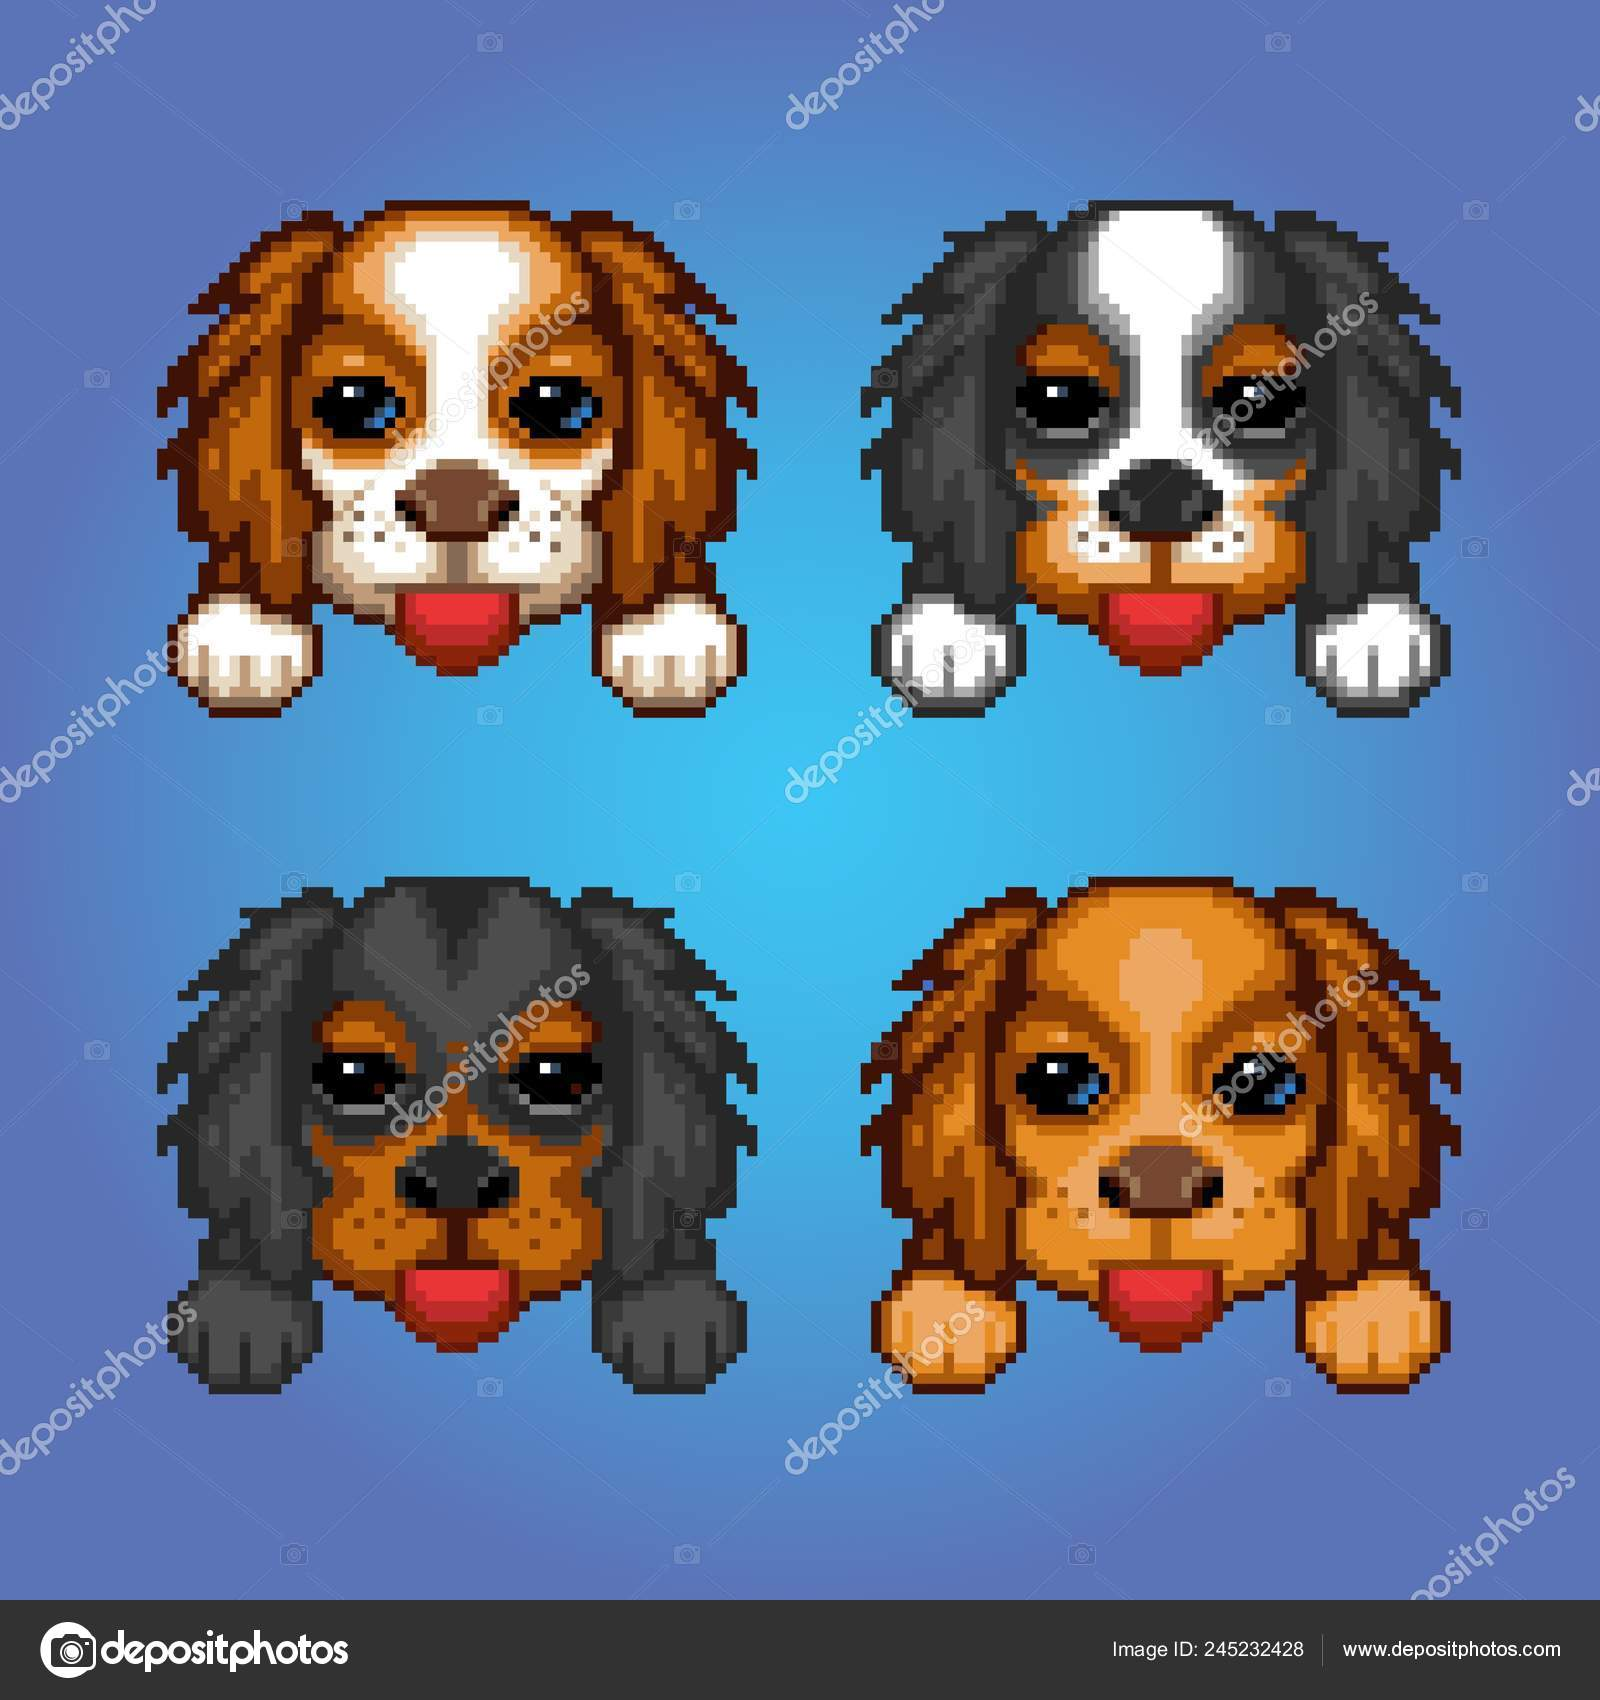 Cute Dogs Cavalier King Charles Spaniel Heads Pixel Art